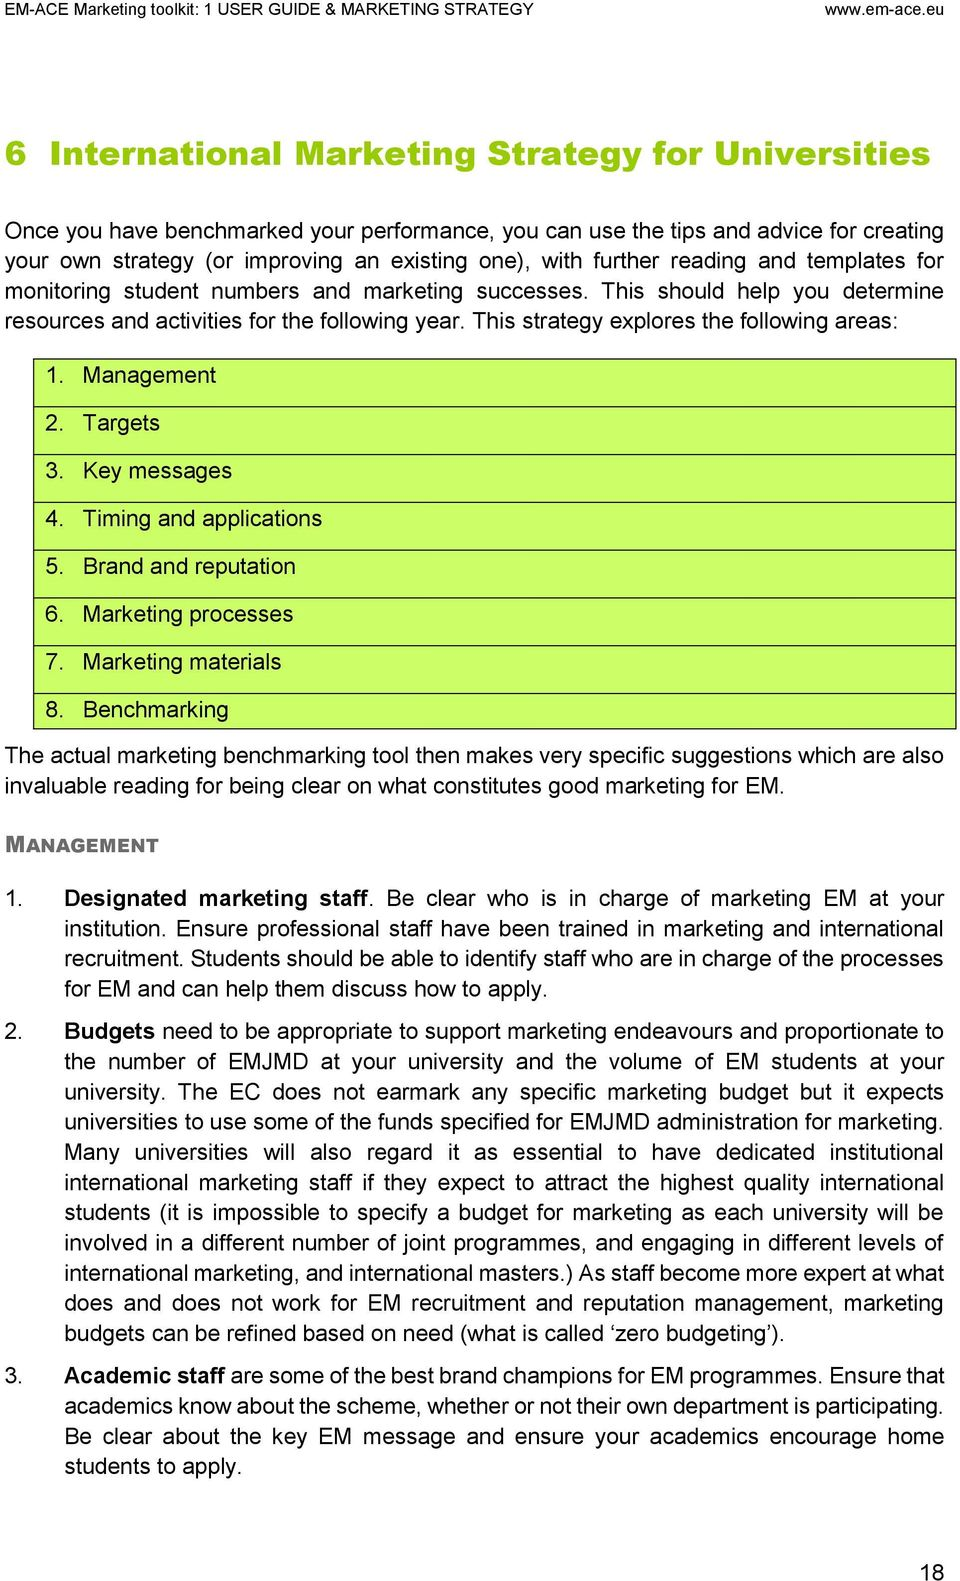 This strategy explores the following areas: 1. Management 2. Targets 3. Key messages 4. Timing and applications 5. Brand and reputation 6. Marketing processes 7. Marketing materials 8.